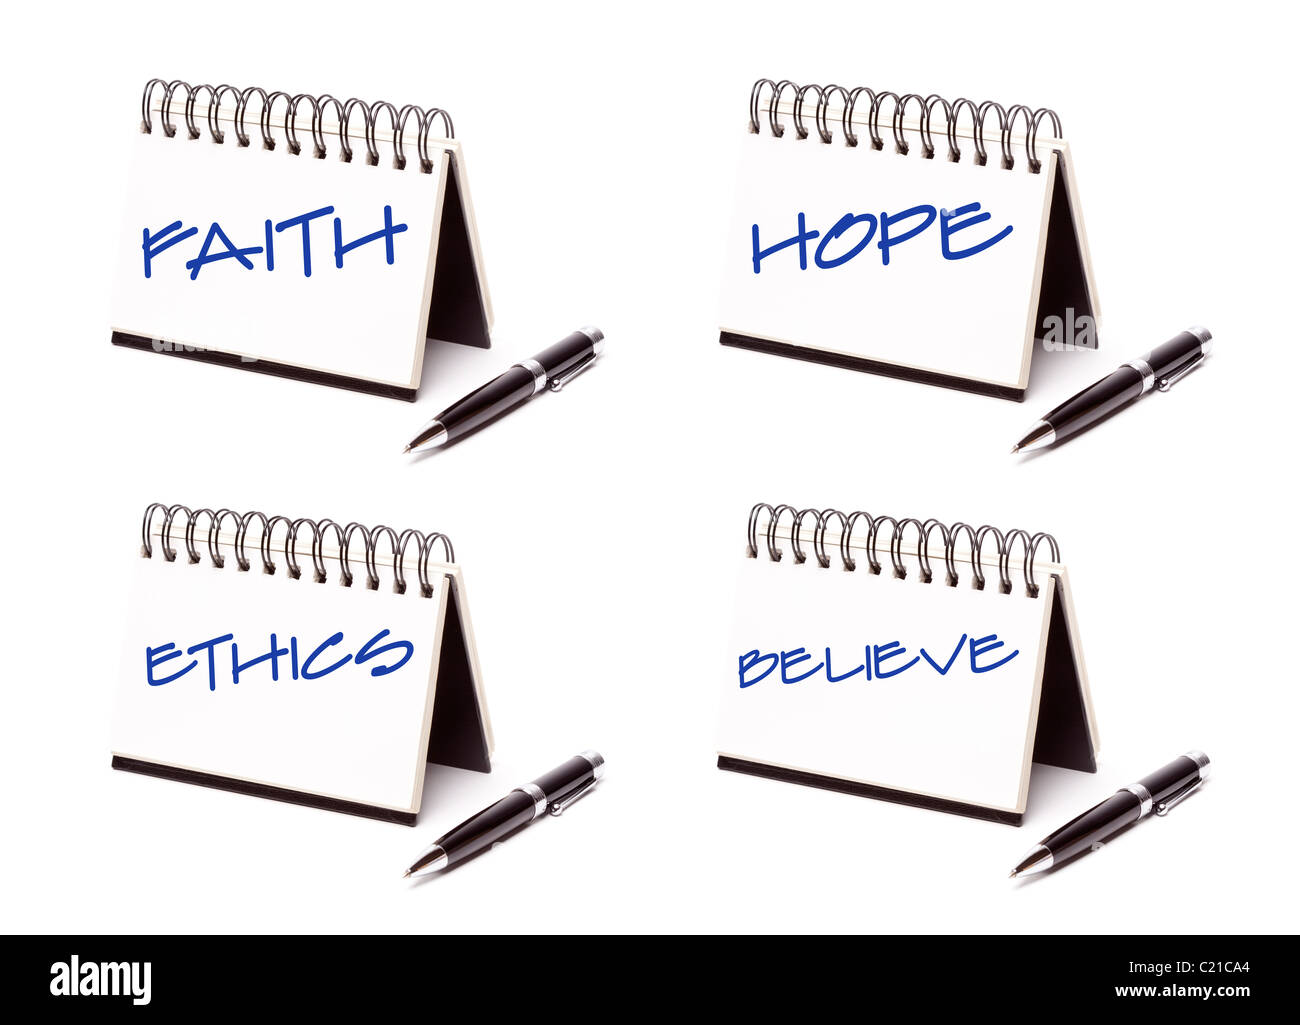 Spiral Note Pad and Pen Series Isolated on White - Faith, Hope, Ethics and Believe - XXXL. - Stock Image